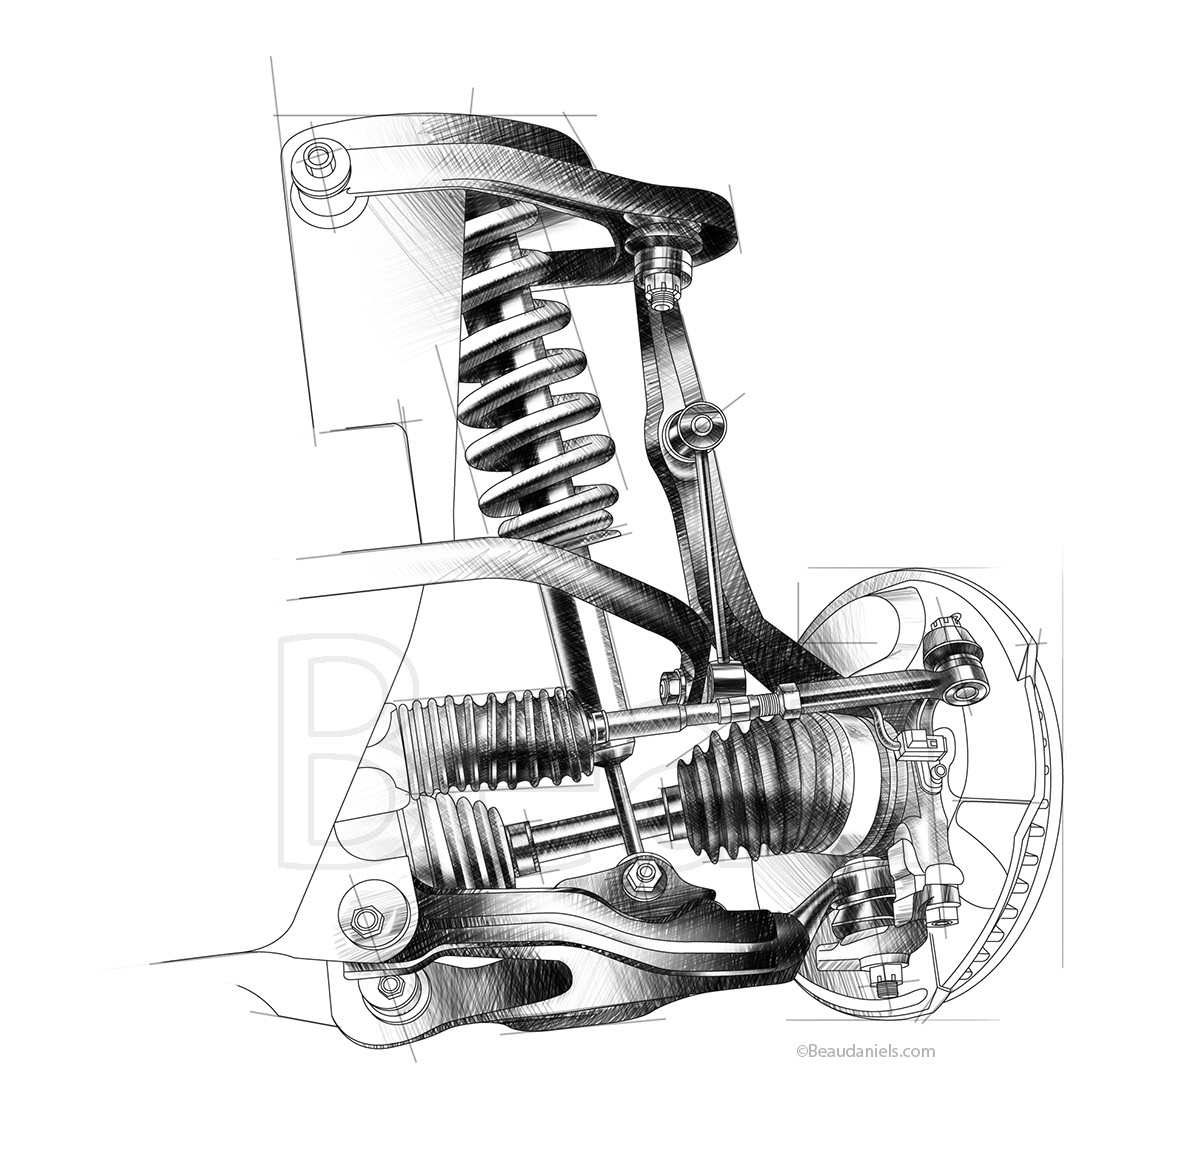 Car Transmission Illustrations together with Car Transmission Illustrations also Car Suspensions besides Toyota Fj Cruiser Spot Illustrations together with Honda S2000 Drawings. on generic car engines portfolio 3